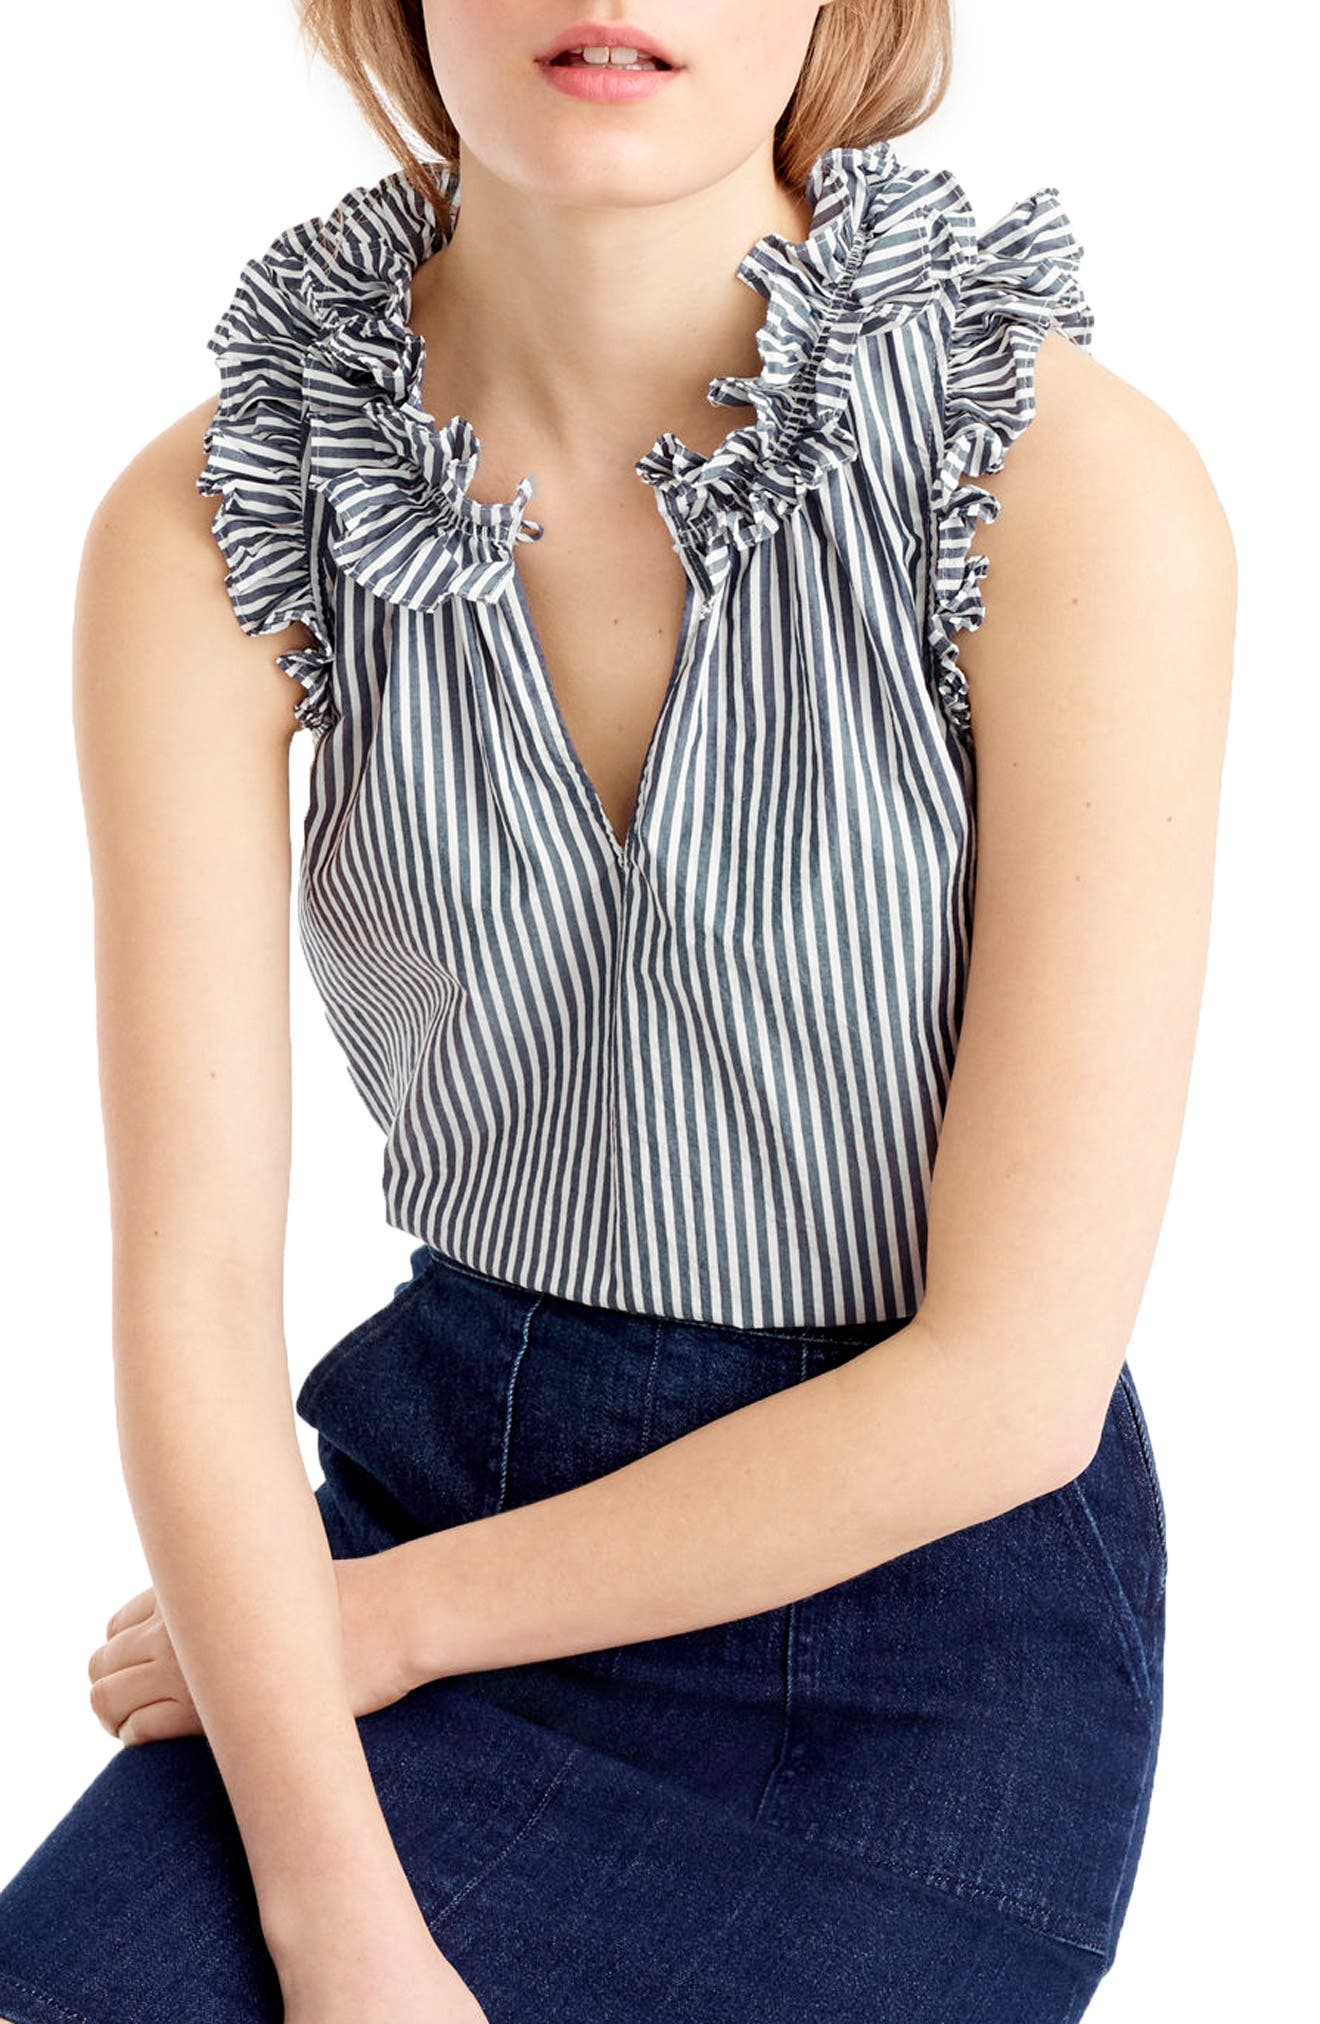 Alternate Image 1 Selected - J.Crew Ruffle Stripe Cotton Poplin Top